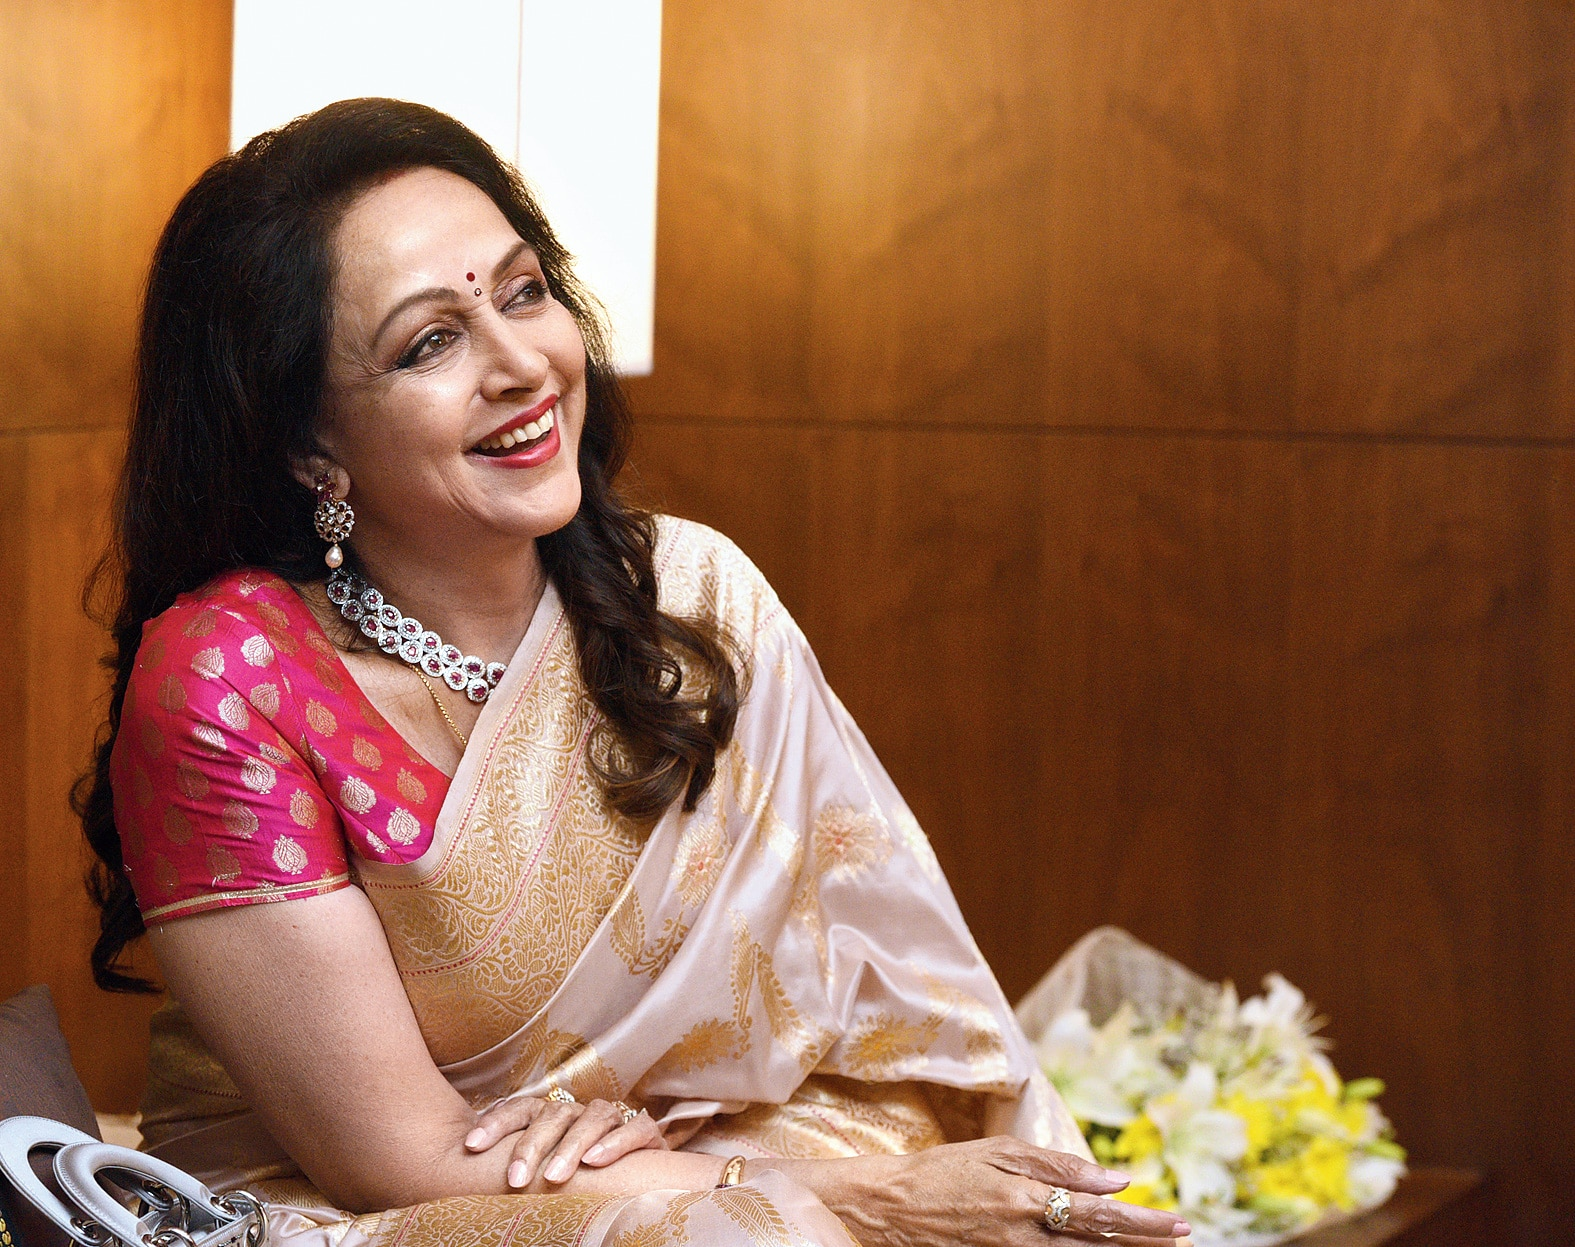 Indian Idol 12: Hema Malini To Grace The Stage Of The Singing Reality Show This Weekend